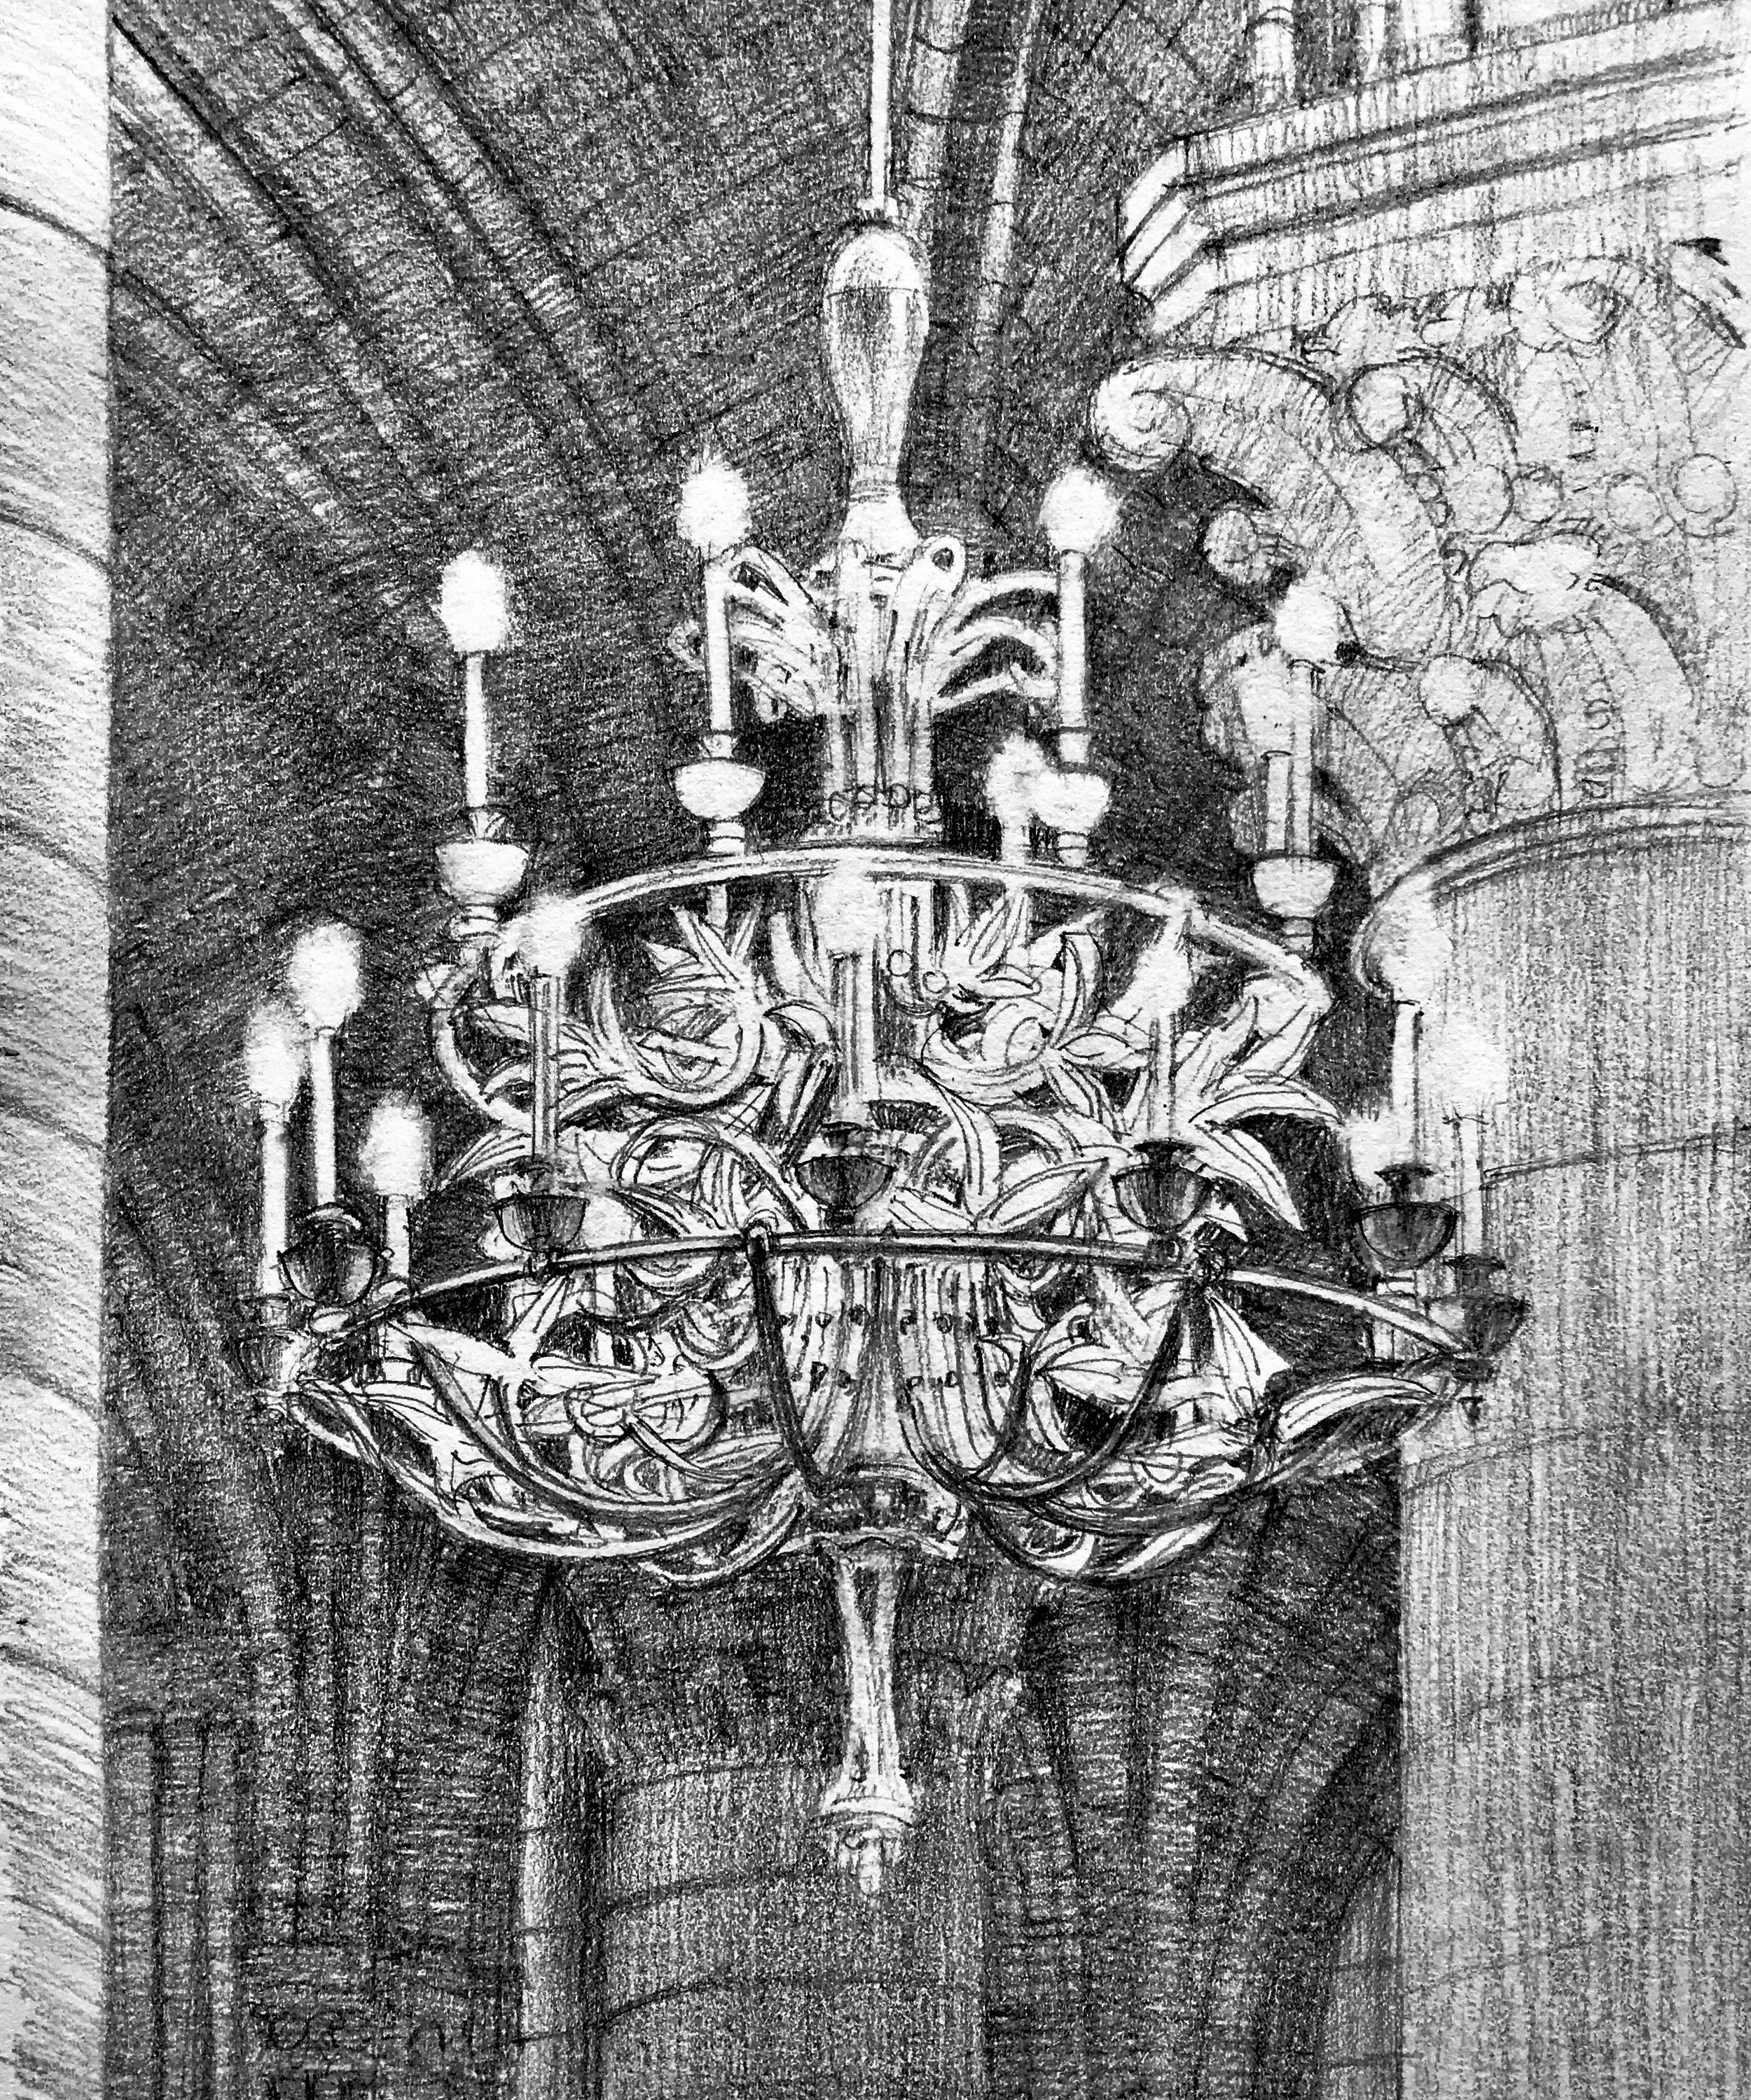 In this drawing of a chandelier in Notre Dame, I drew most of the chandelier by negative space (See Blog #2). Then I added the bracket lines into the spaces I'd created, starting with the closest.  Half the actual detail was left out, but the effect was satisfactory. Trying to draw the actual chandelier arms would have been impossible for me on the scale of this drawing.